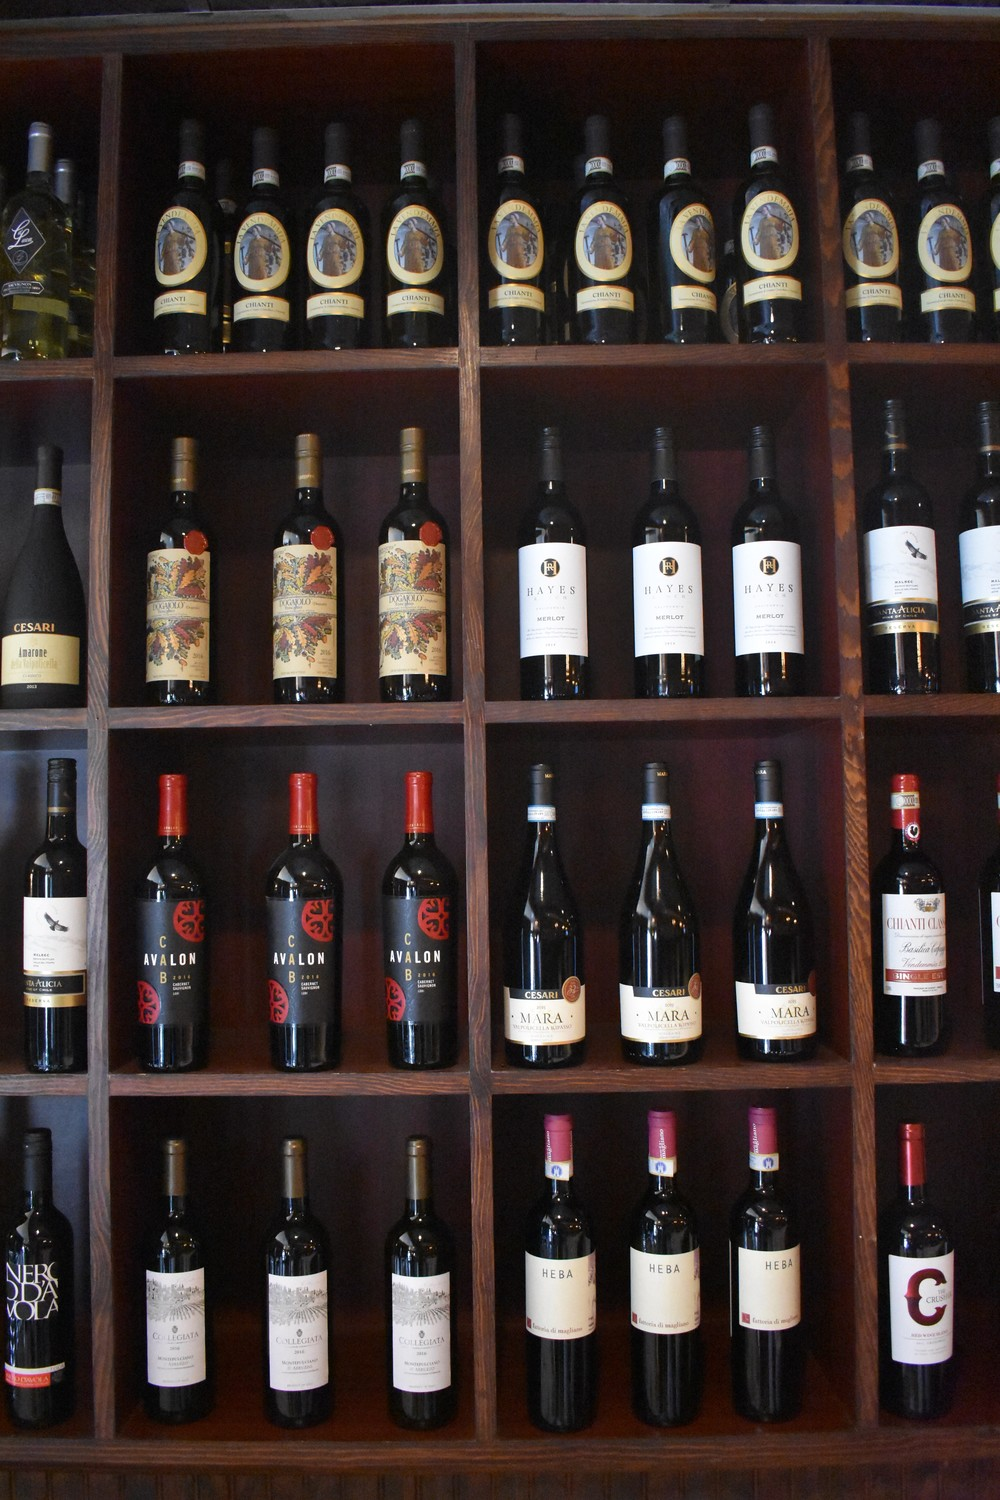 Twenty Four N. Park features red and white wines.